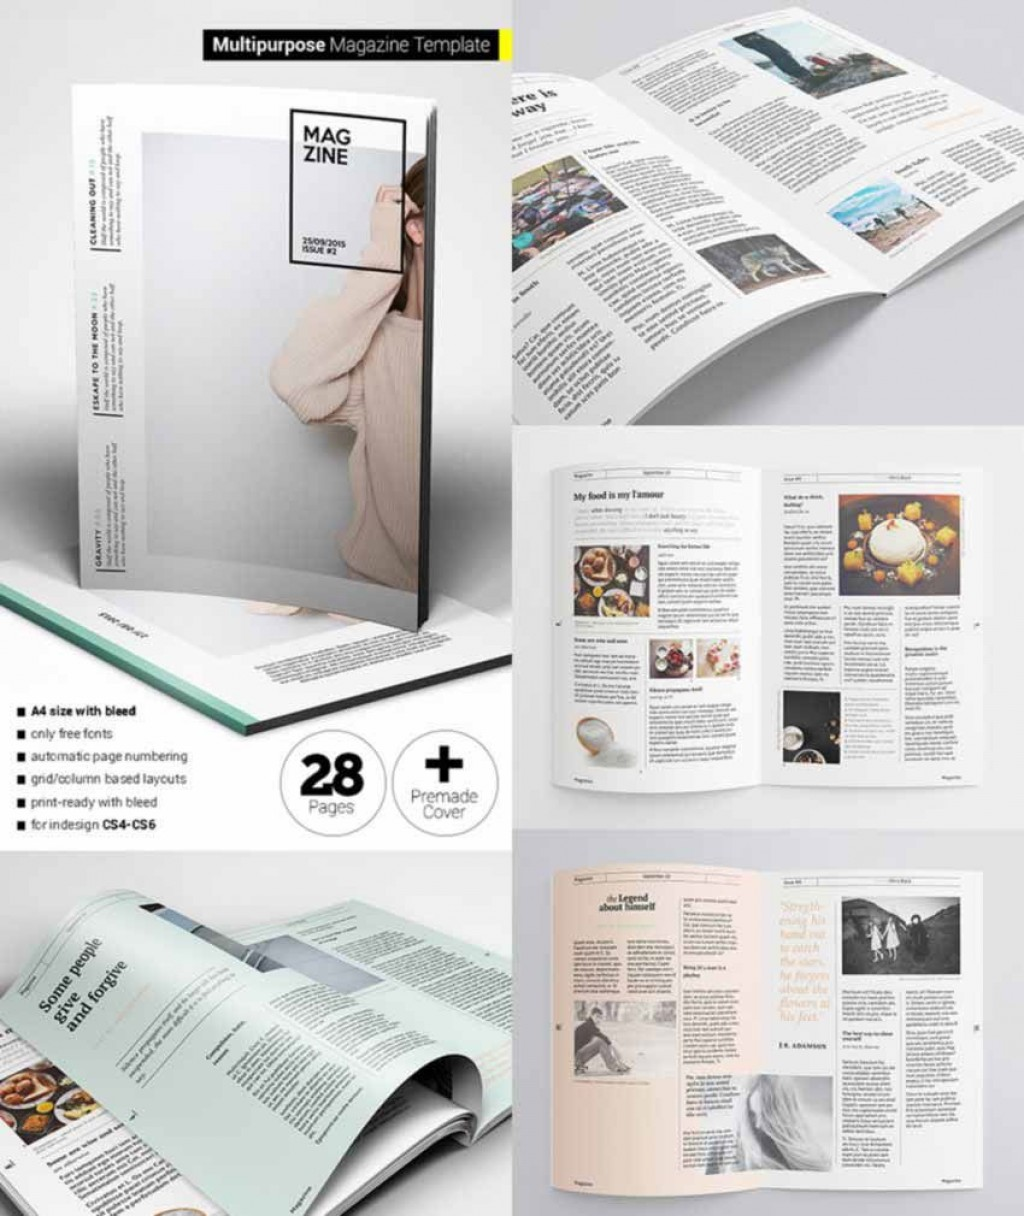 008 Fearsome School Magazine Layout Template Free Download High Definition Large